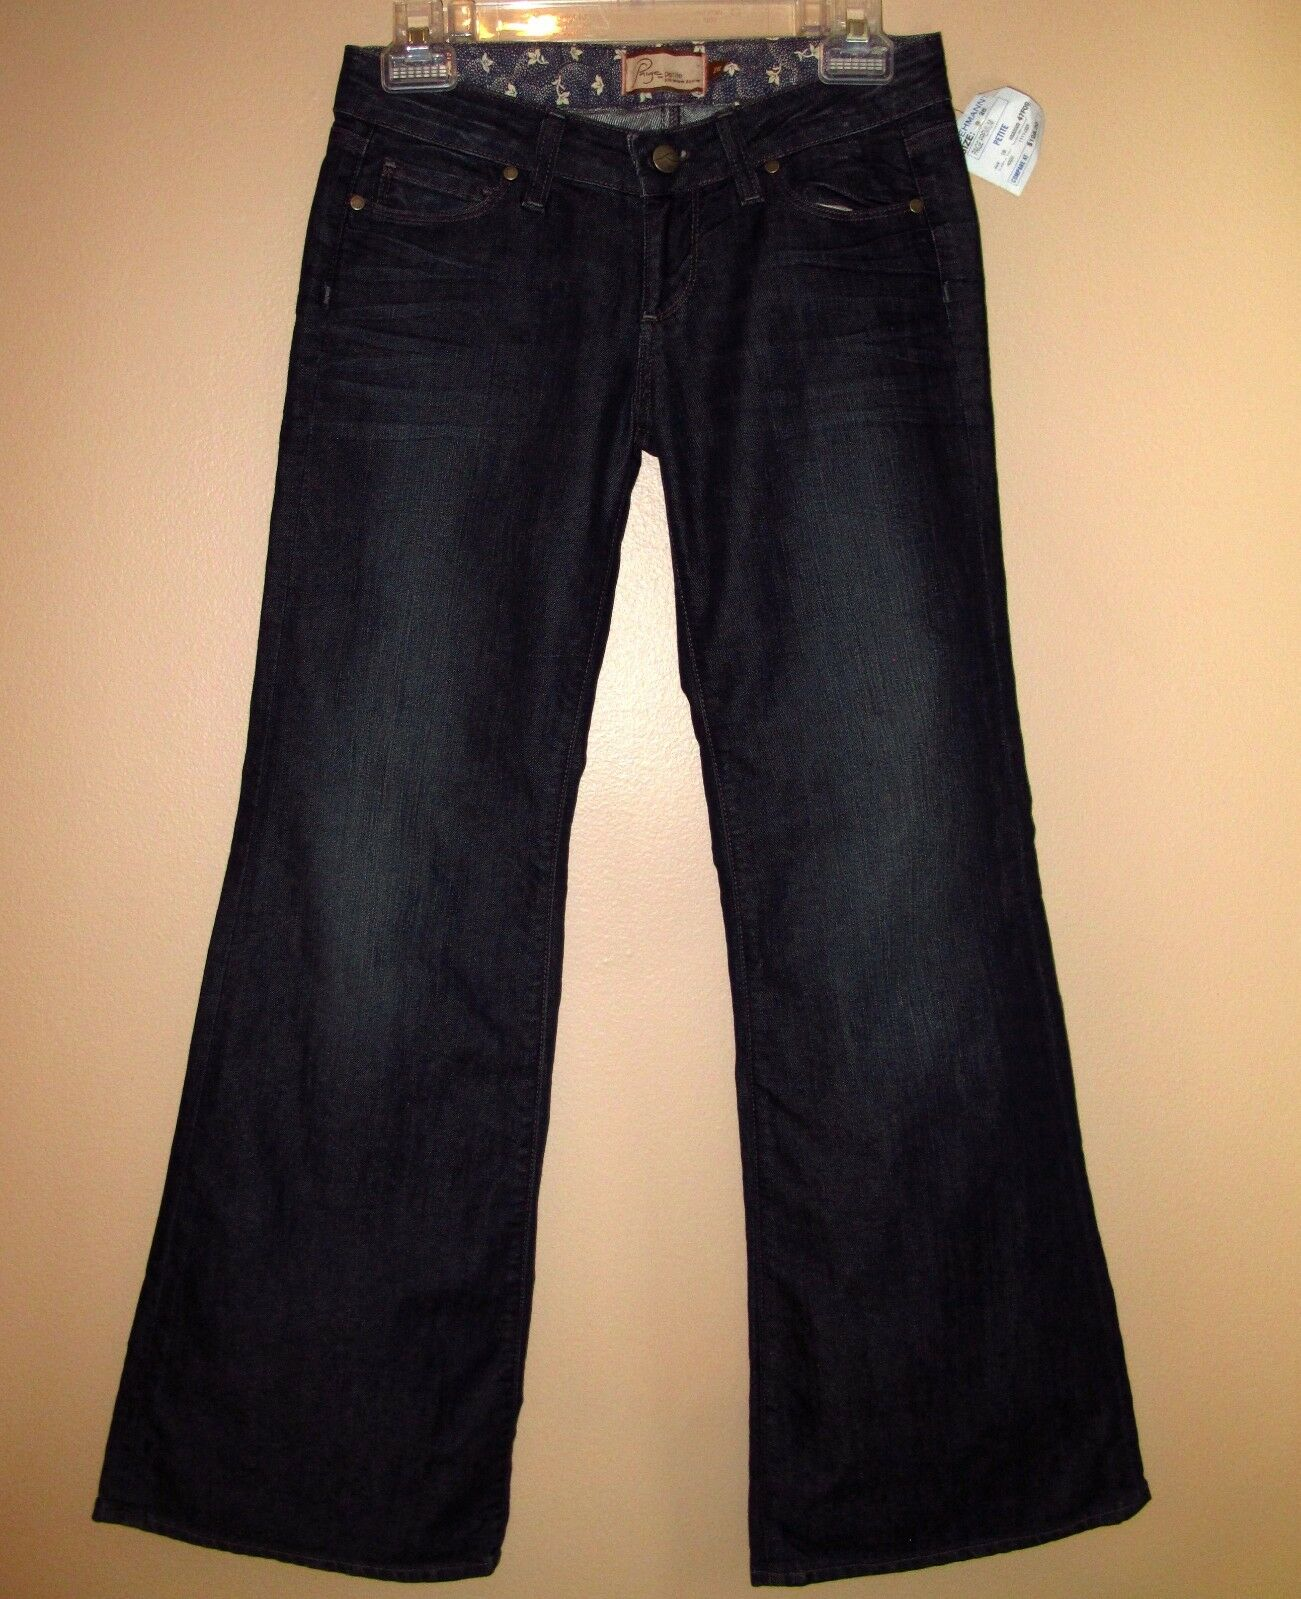 Paige Bundy Wide Leg Relaxed Flare Low Rise Dark Womens Jeans 27 Petite  New